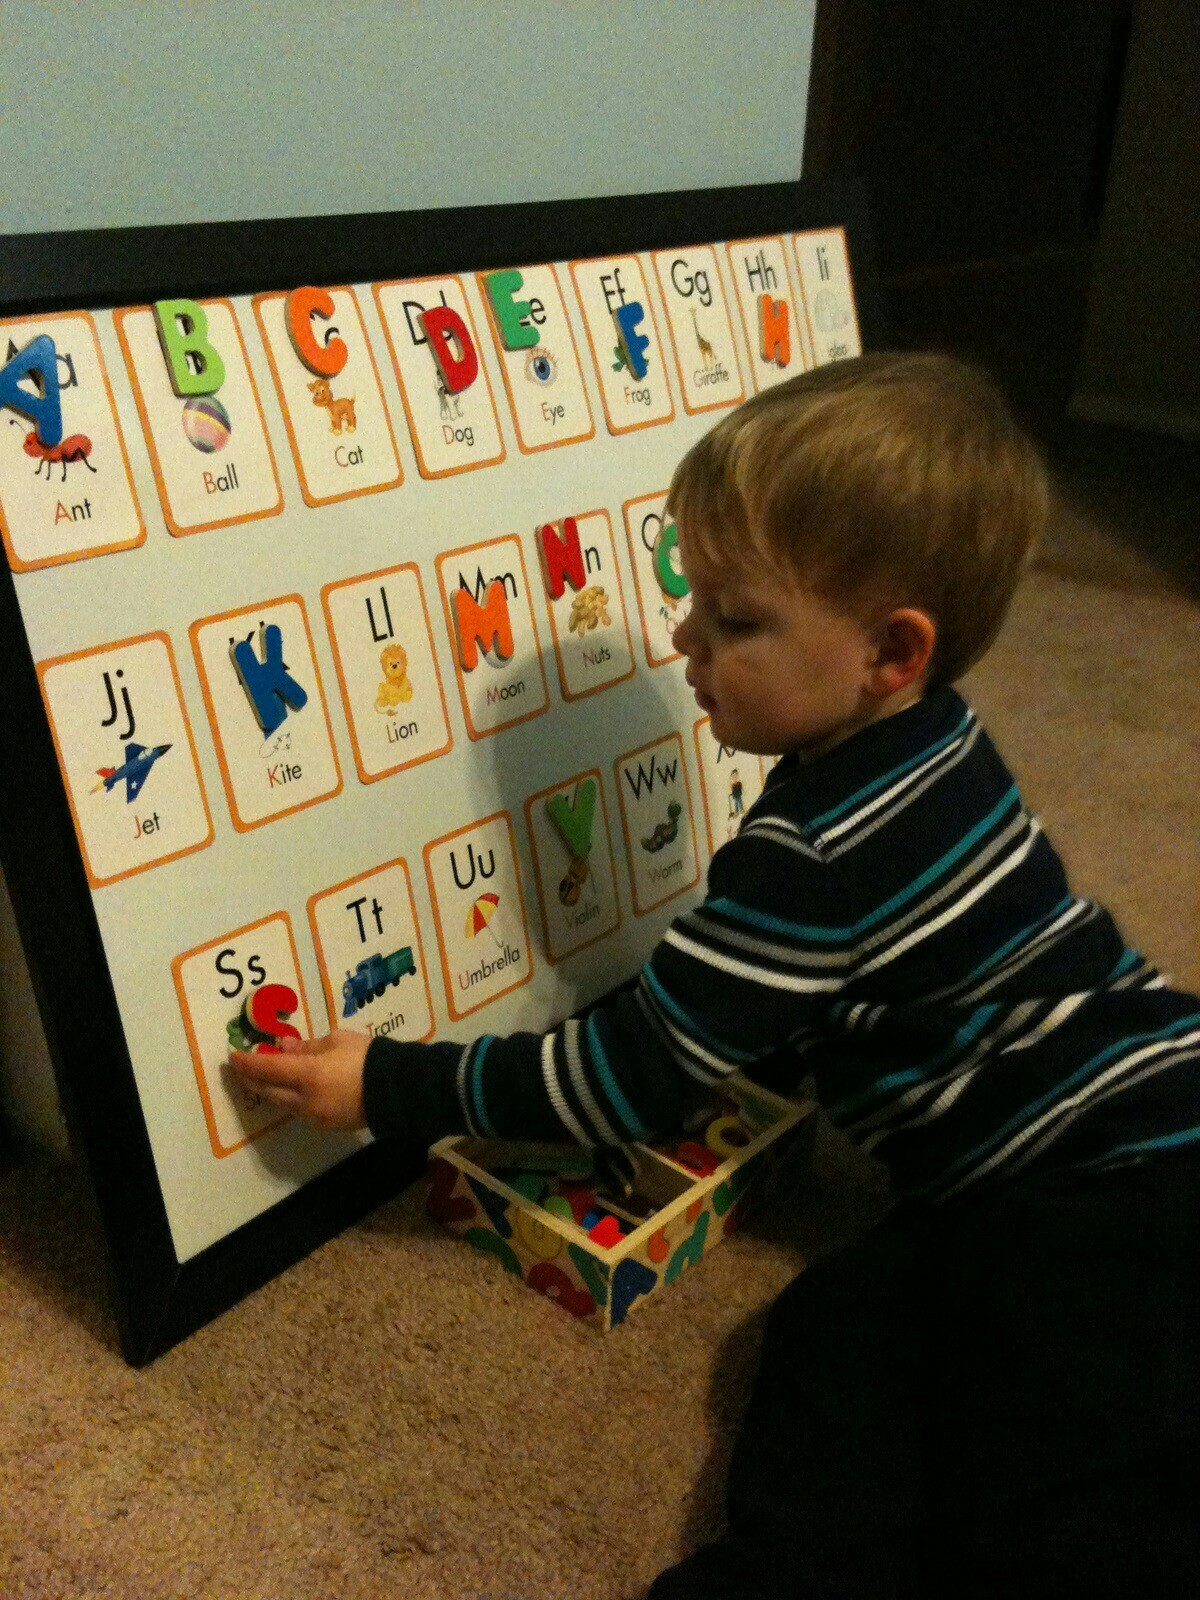 For the Love of Learning DIY Alphabet Learning Board